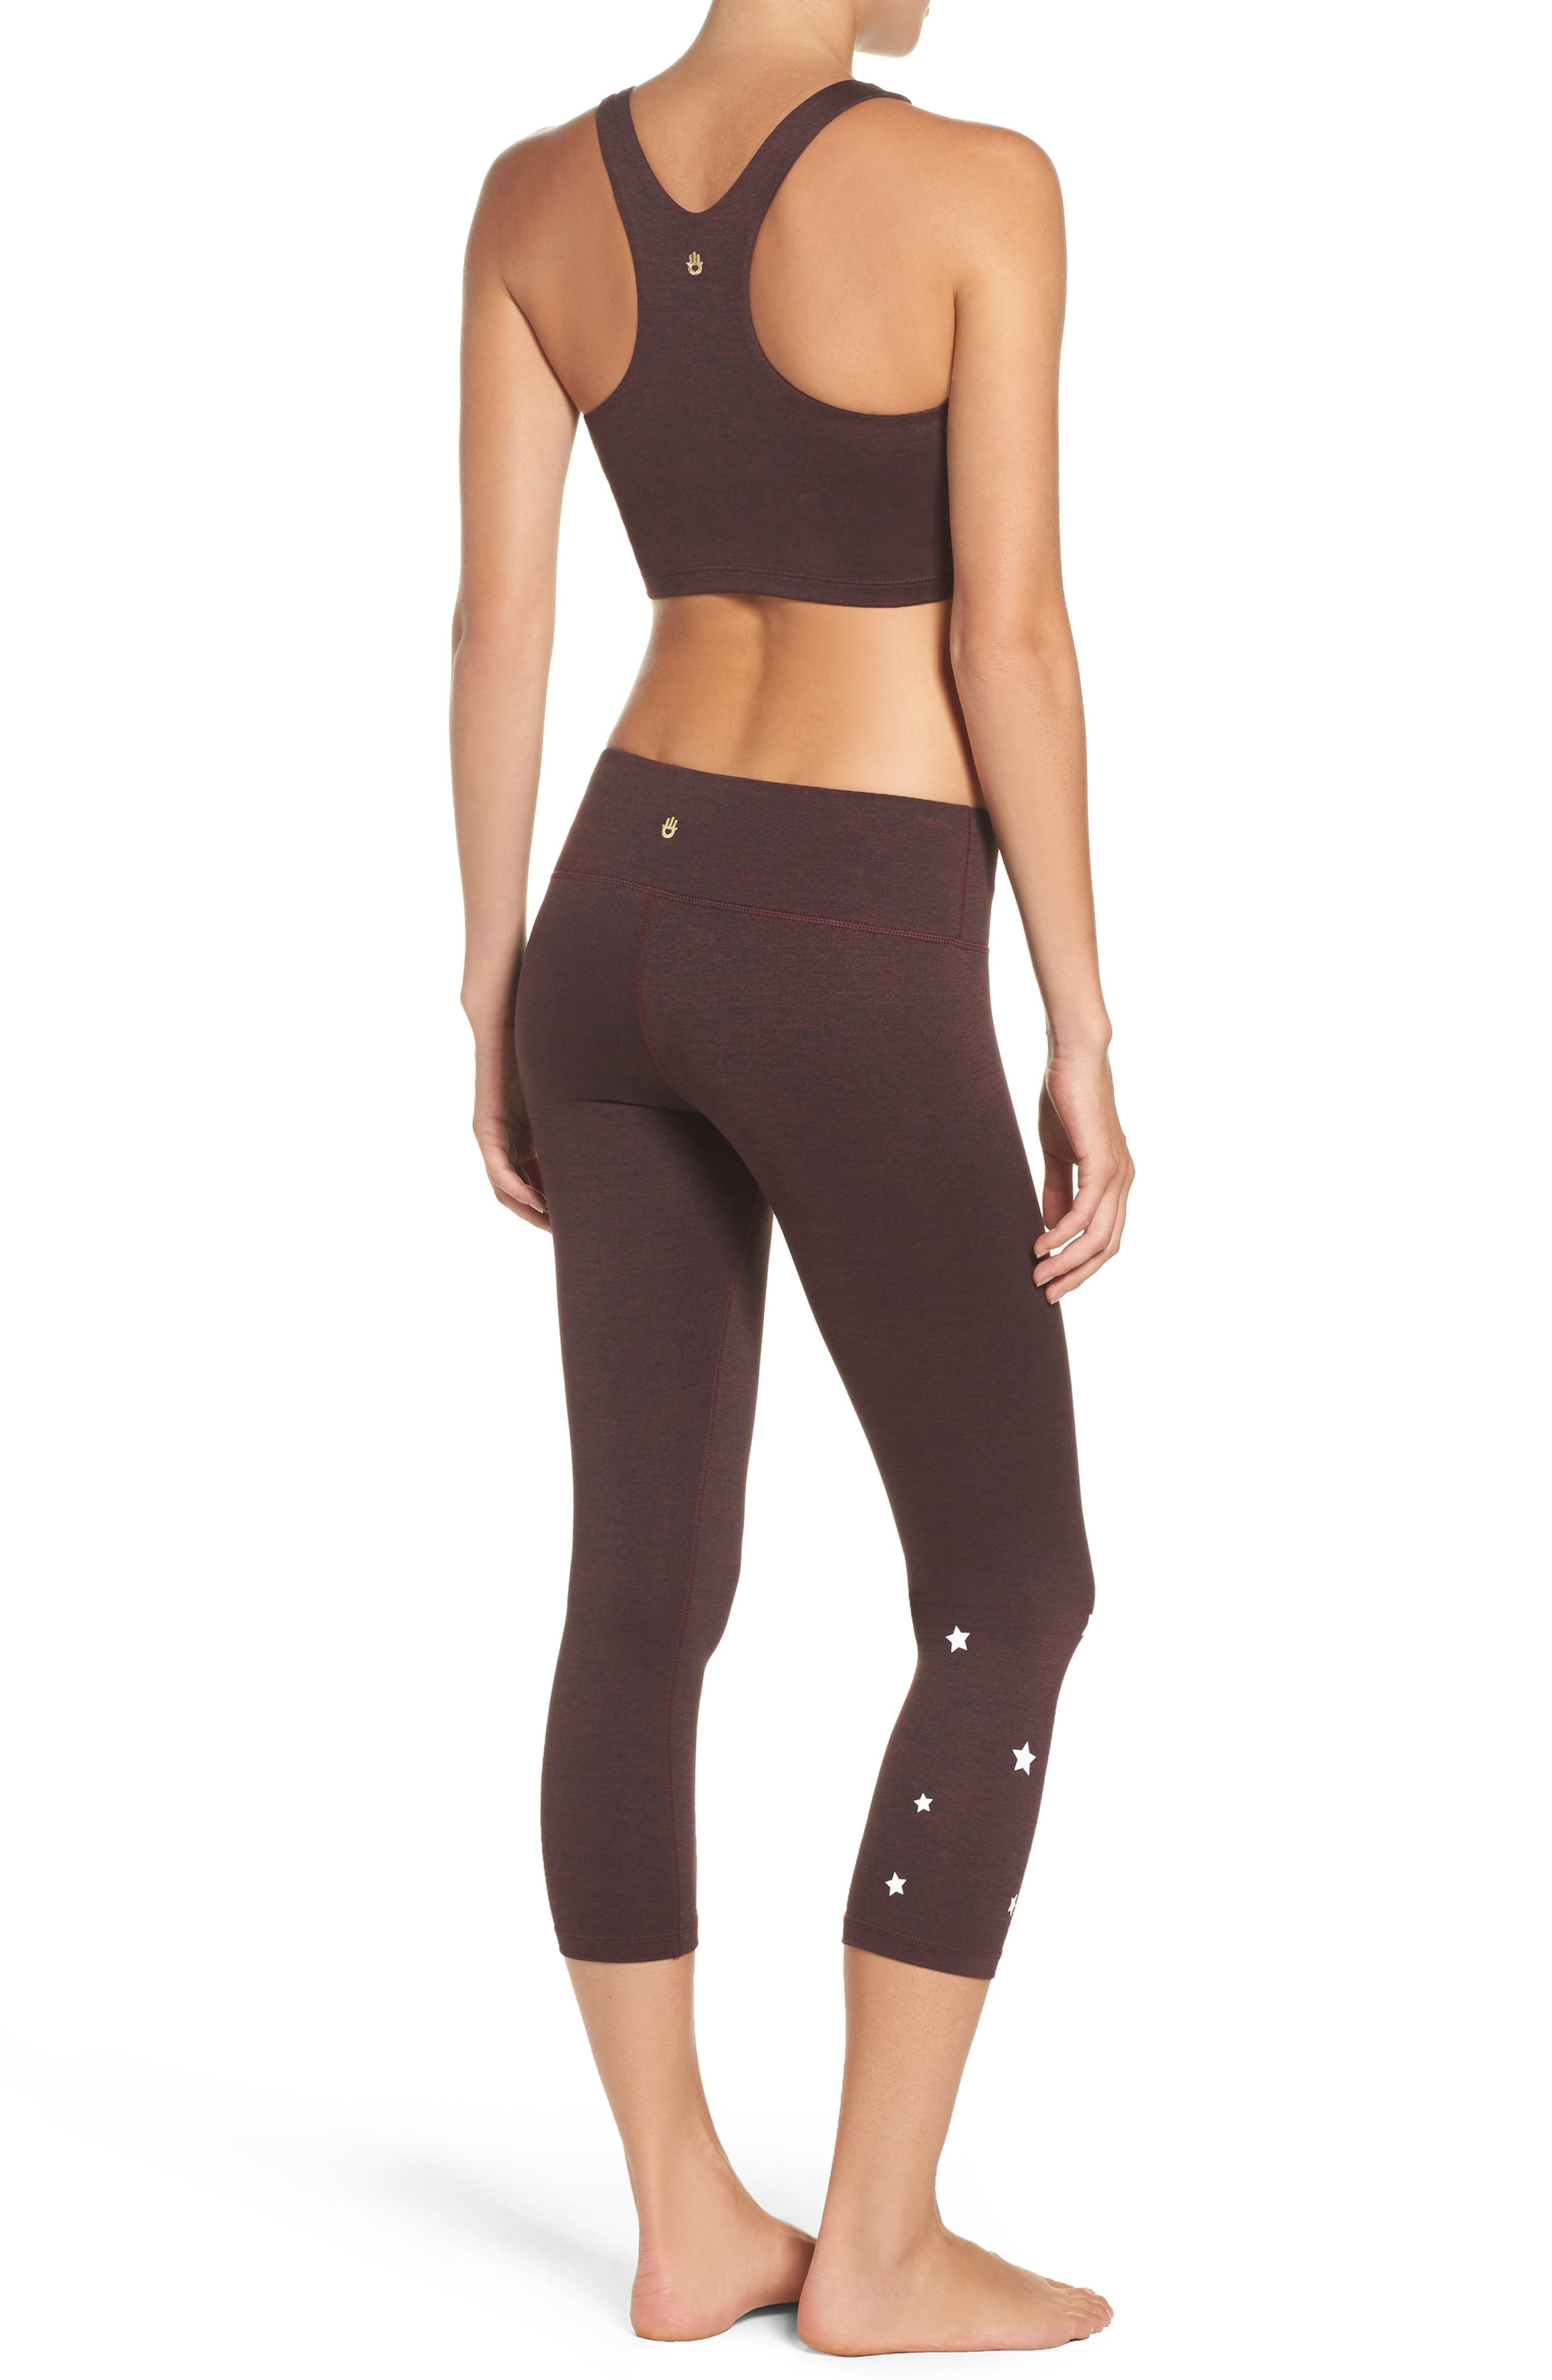 Stars Power Crop Leggings,                             Alternate thumbnail 9, color,                             602